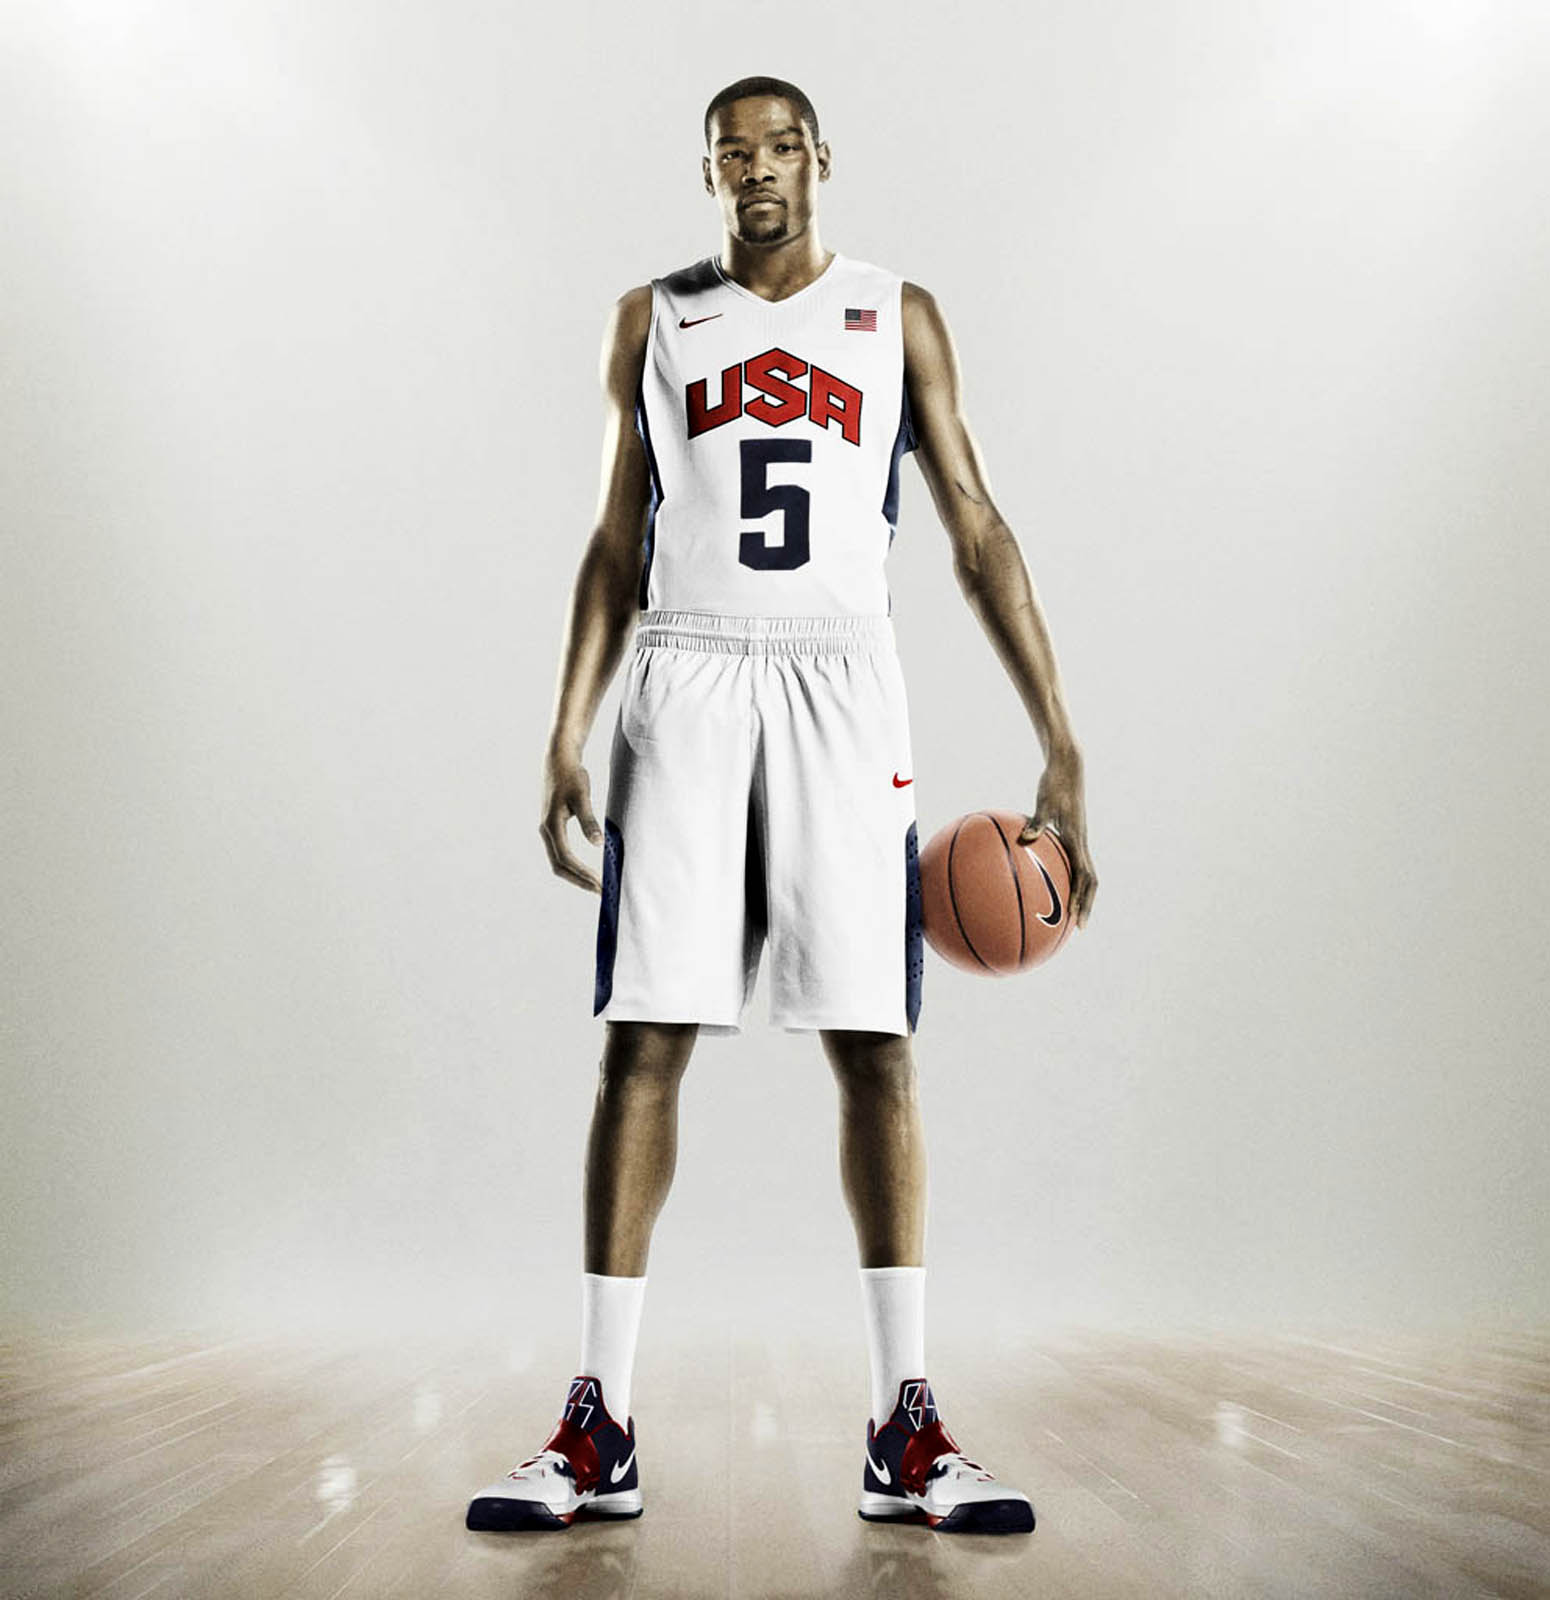 ... Wallpaper: Basketball Team Usa London Olympics 2012 HD Wallpapers